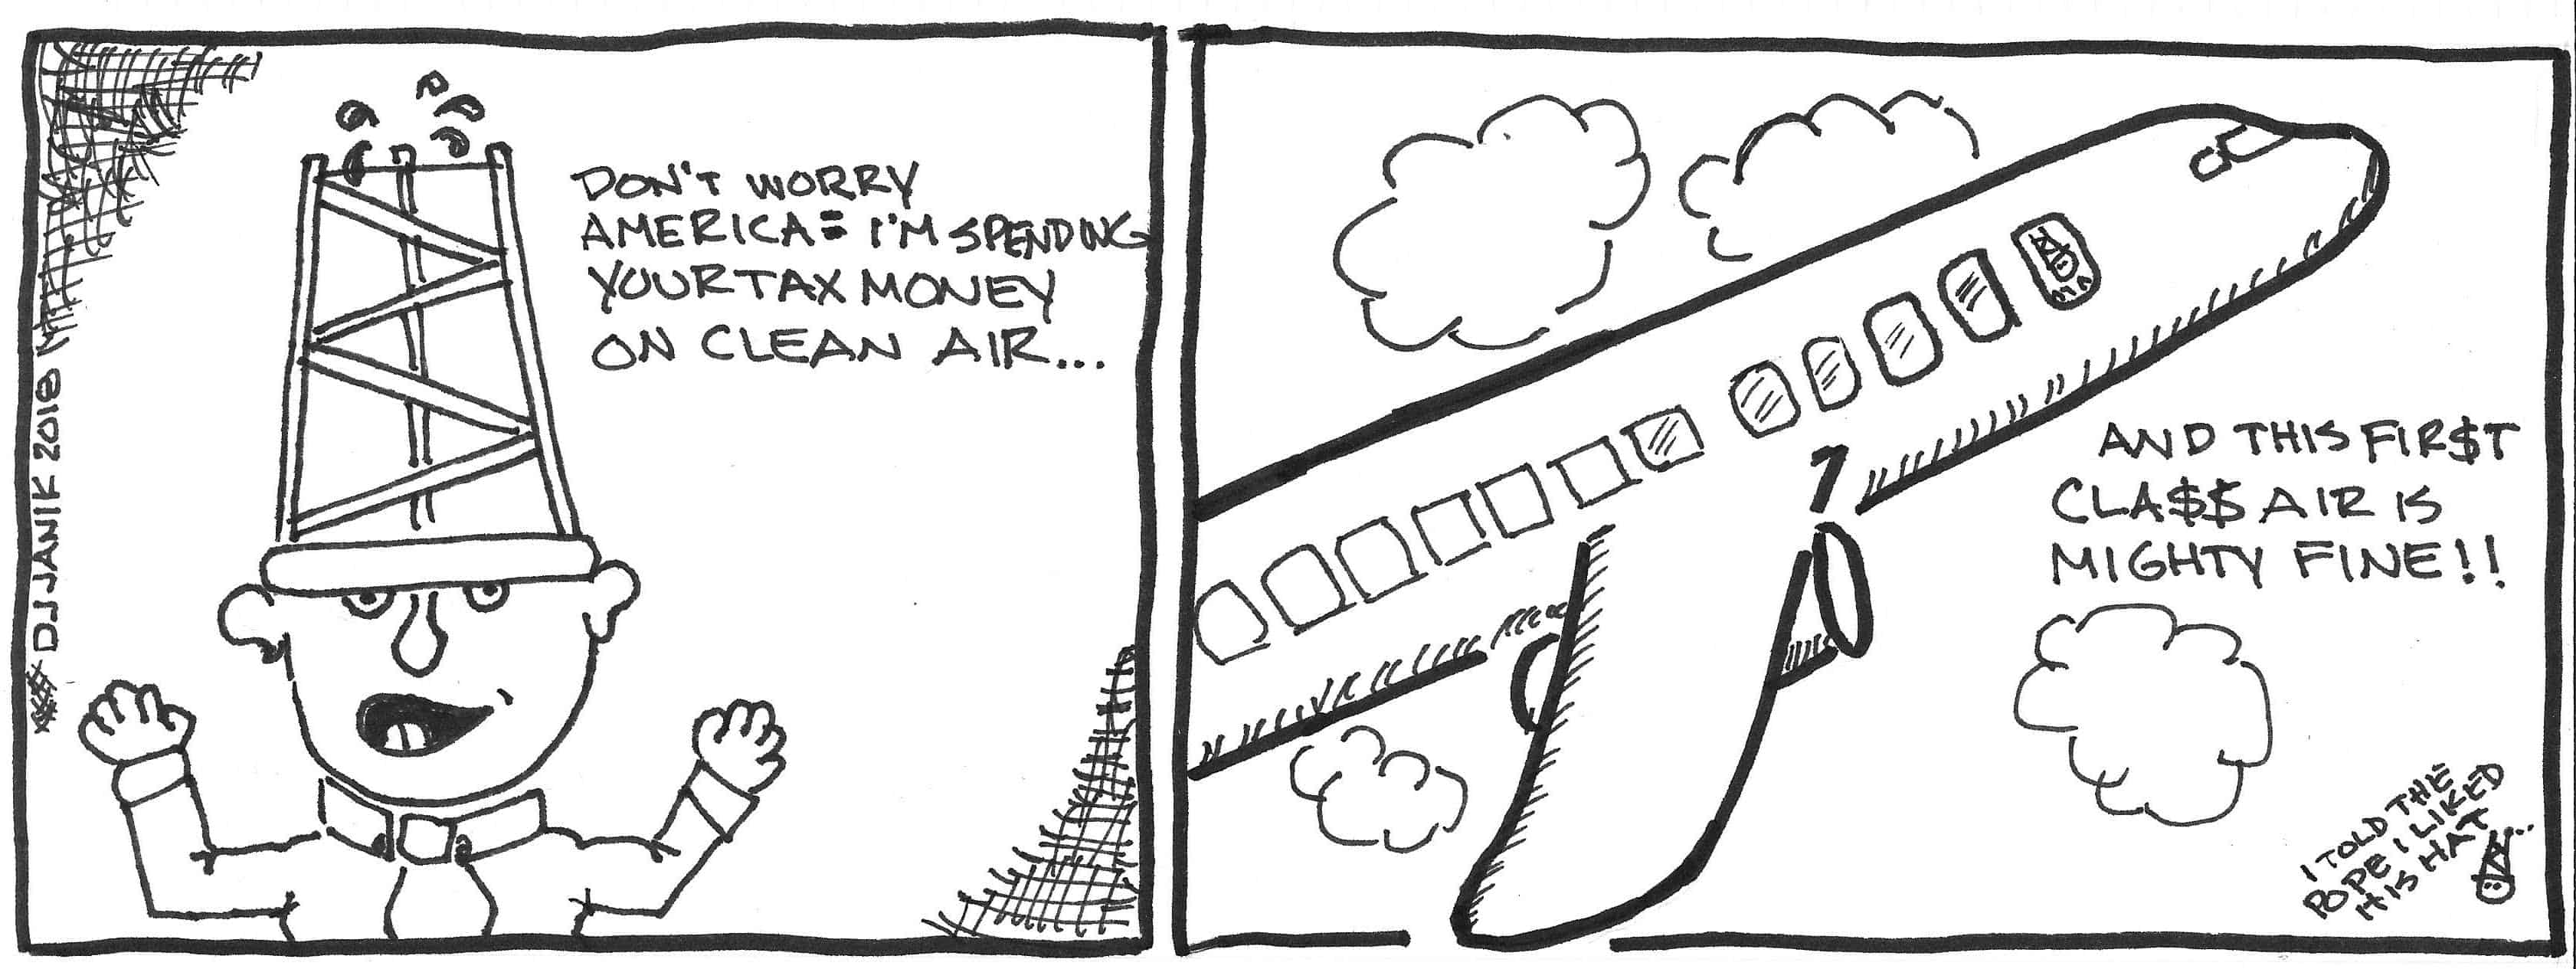 Cartoon with jumbo jet